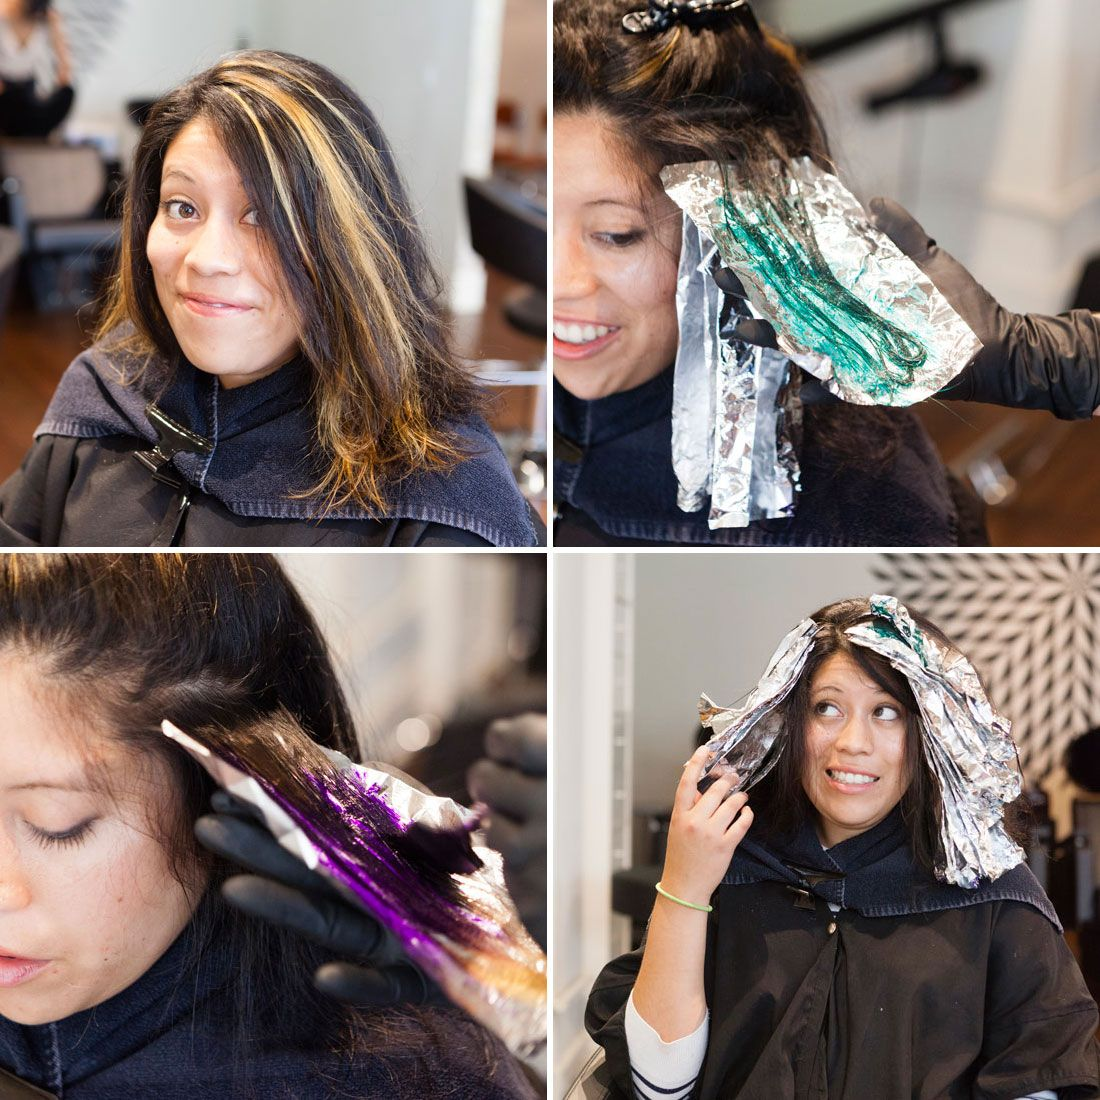 Oil slick hair trend oil slick hair slicked hair and hair trends this crazy new hair dye trend i tried finally lets brunettes have some fun oil slick solutioingenieria Choice Image